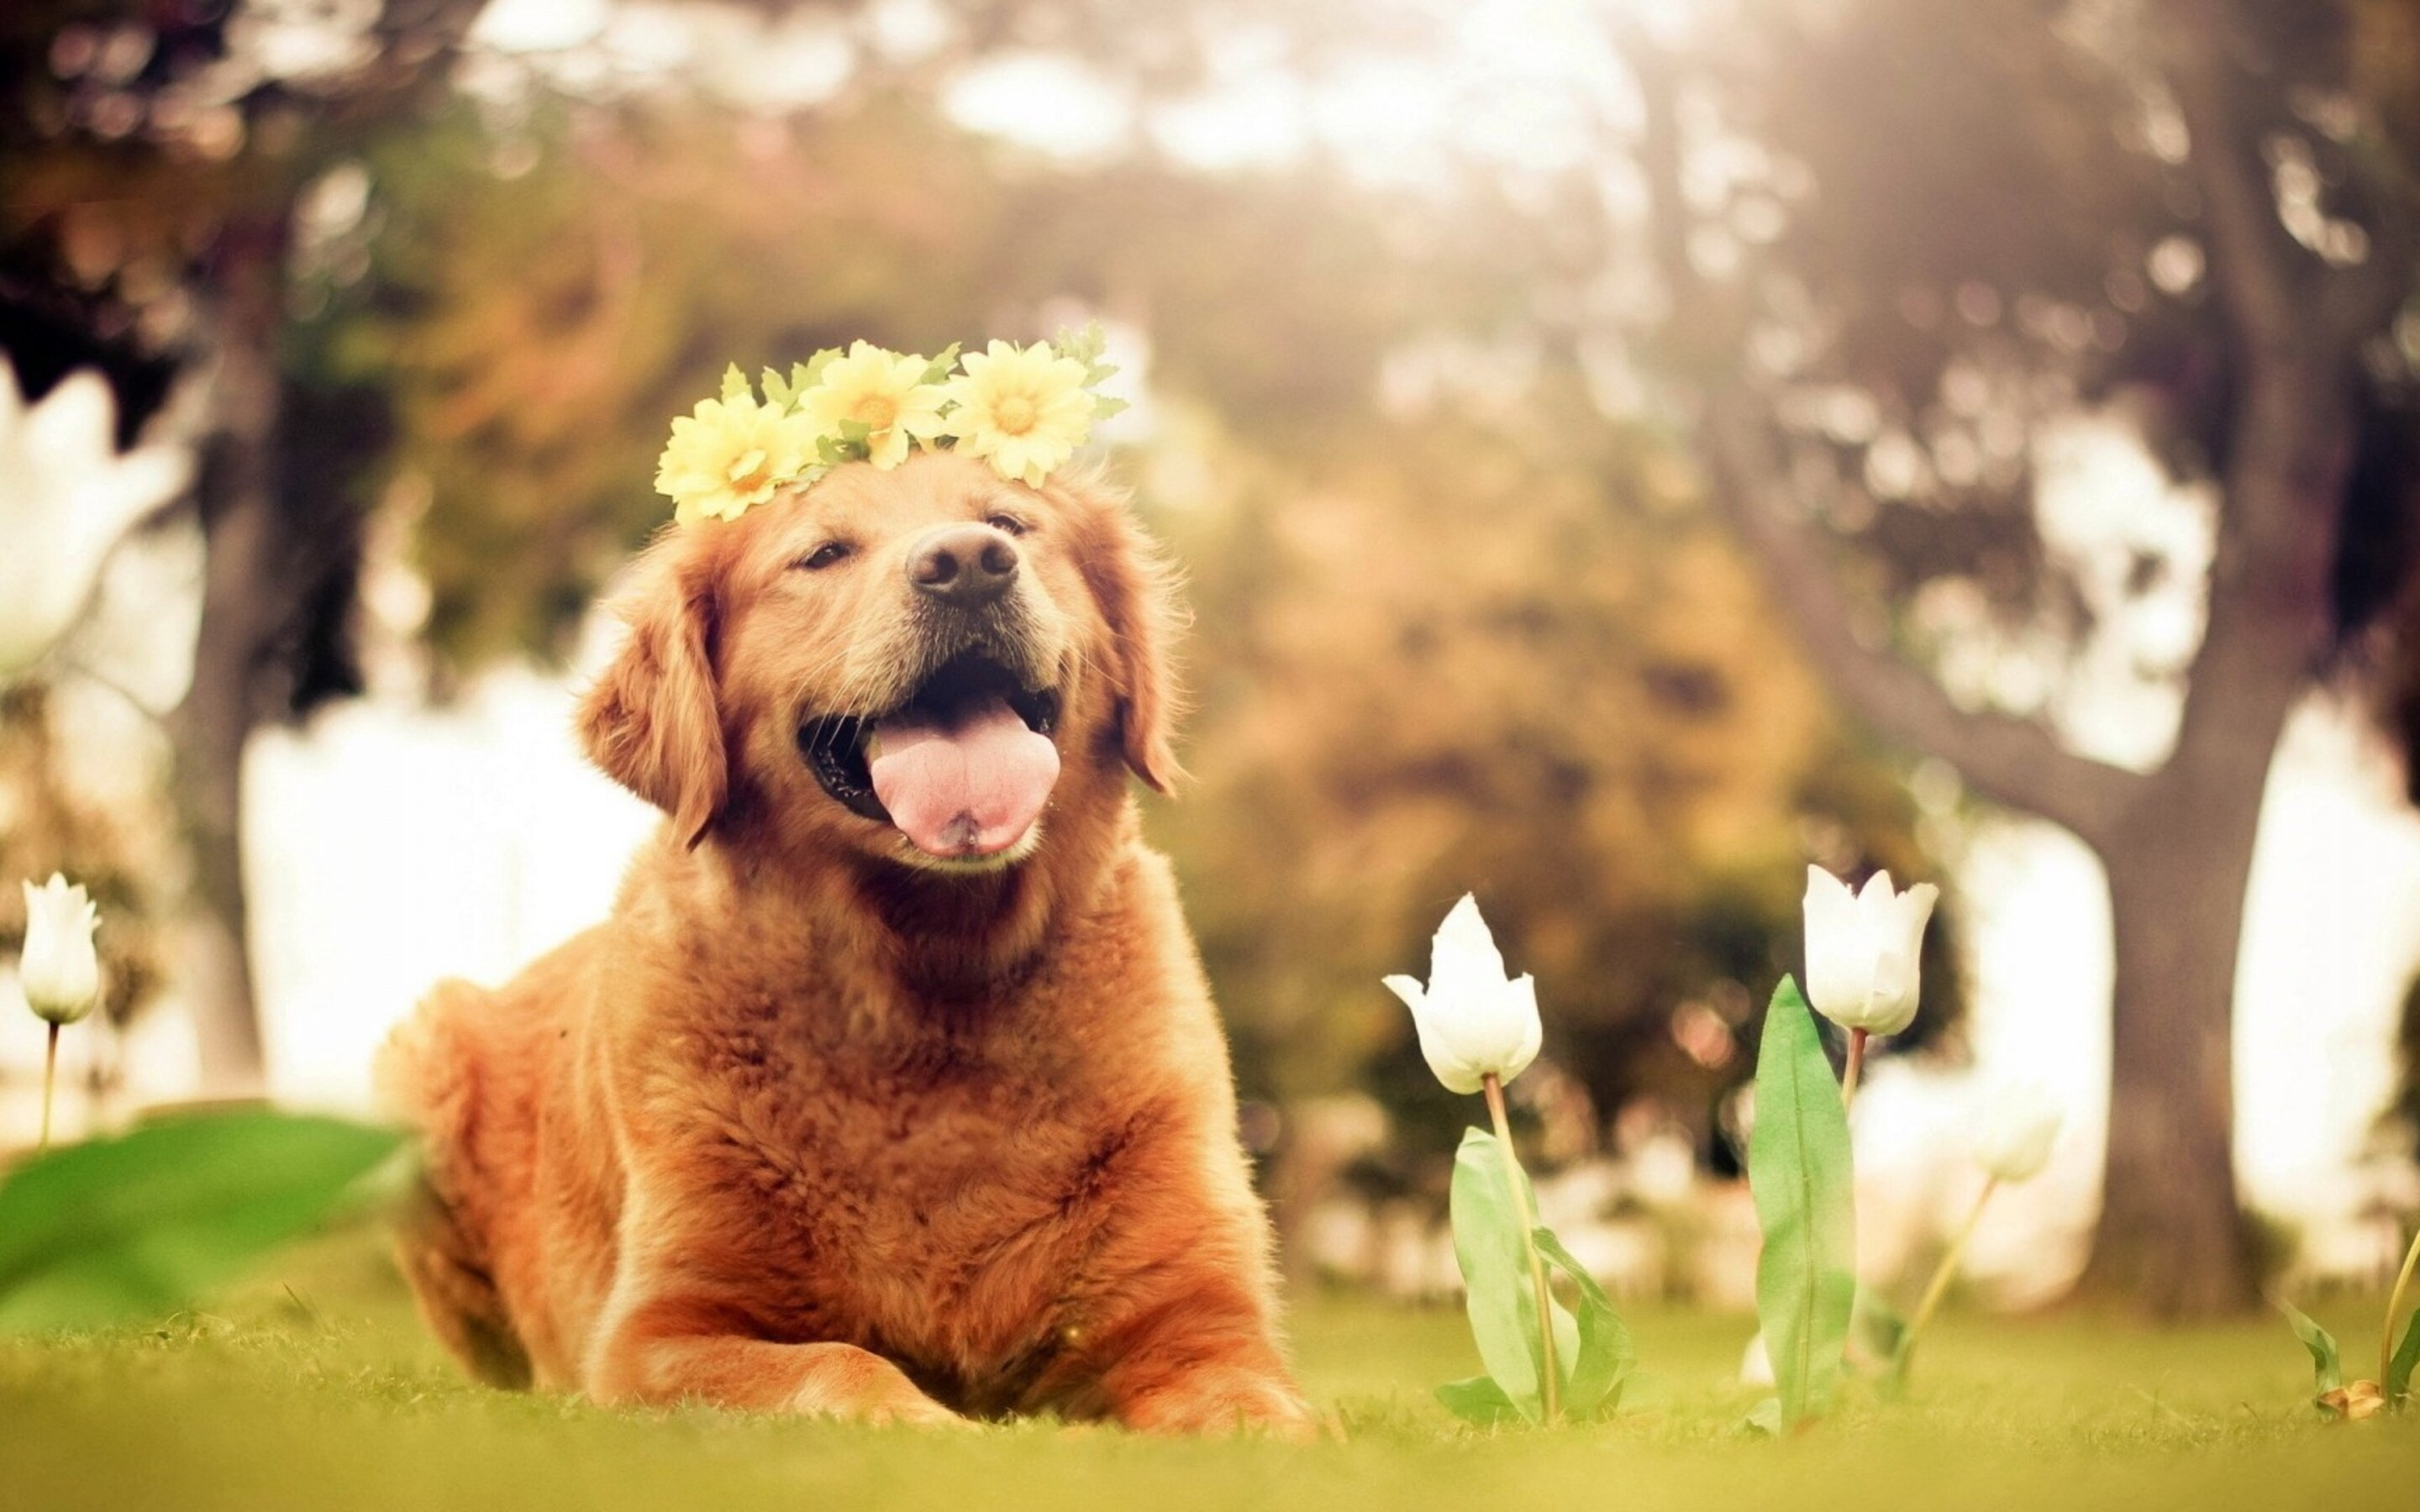 Best Wallpaper Macbook Dog - dog-flowers-smiling-wallpaper-2880x1800  You Should Have_994170.jpg